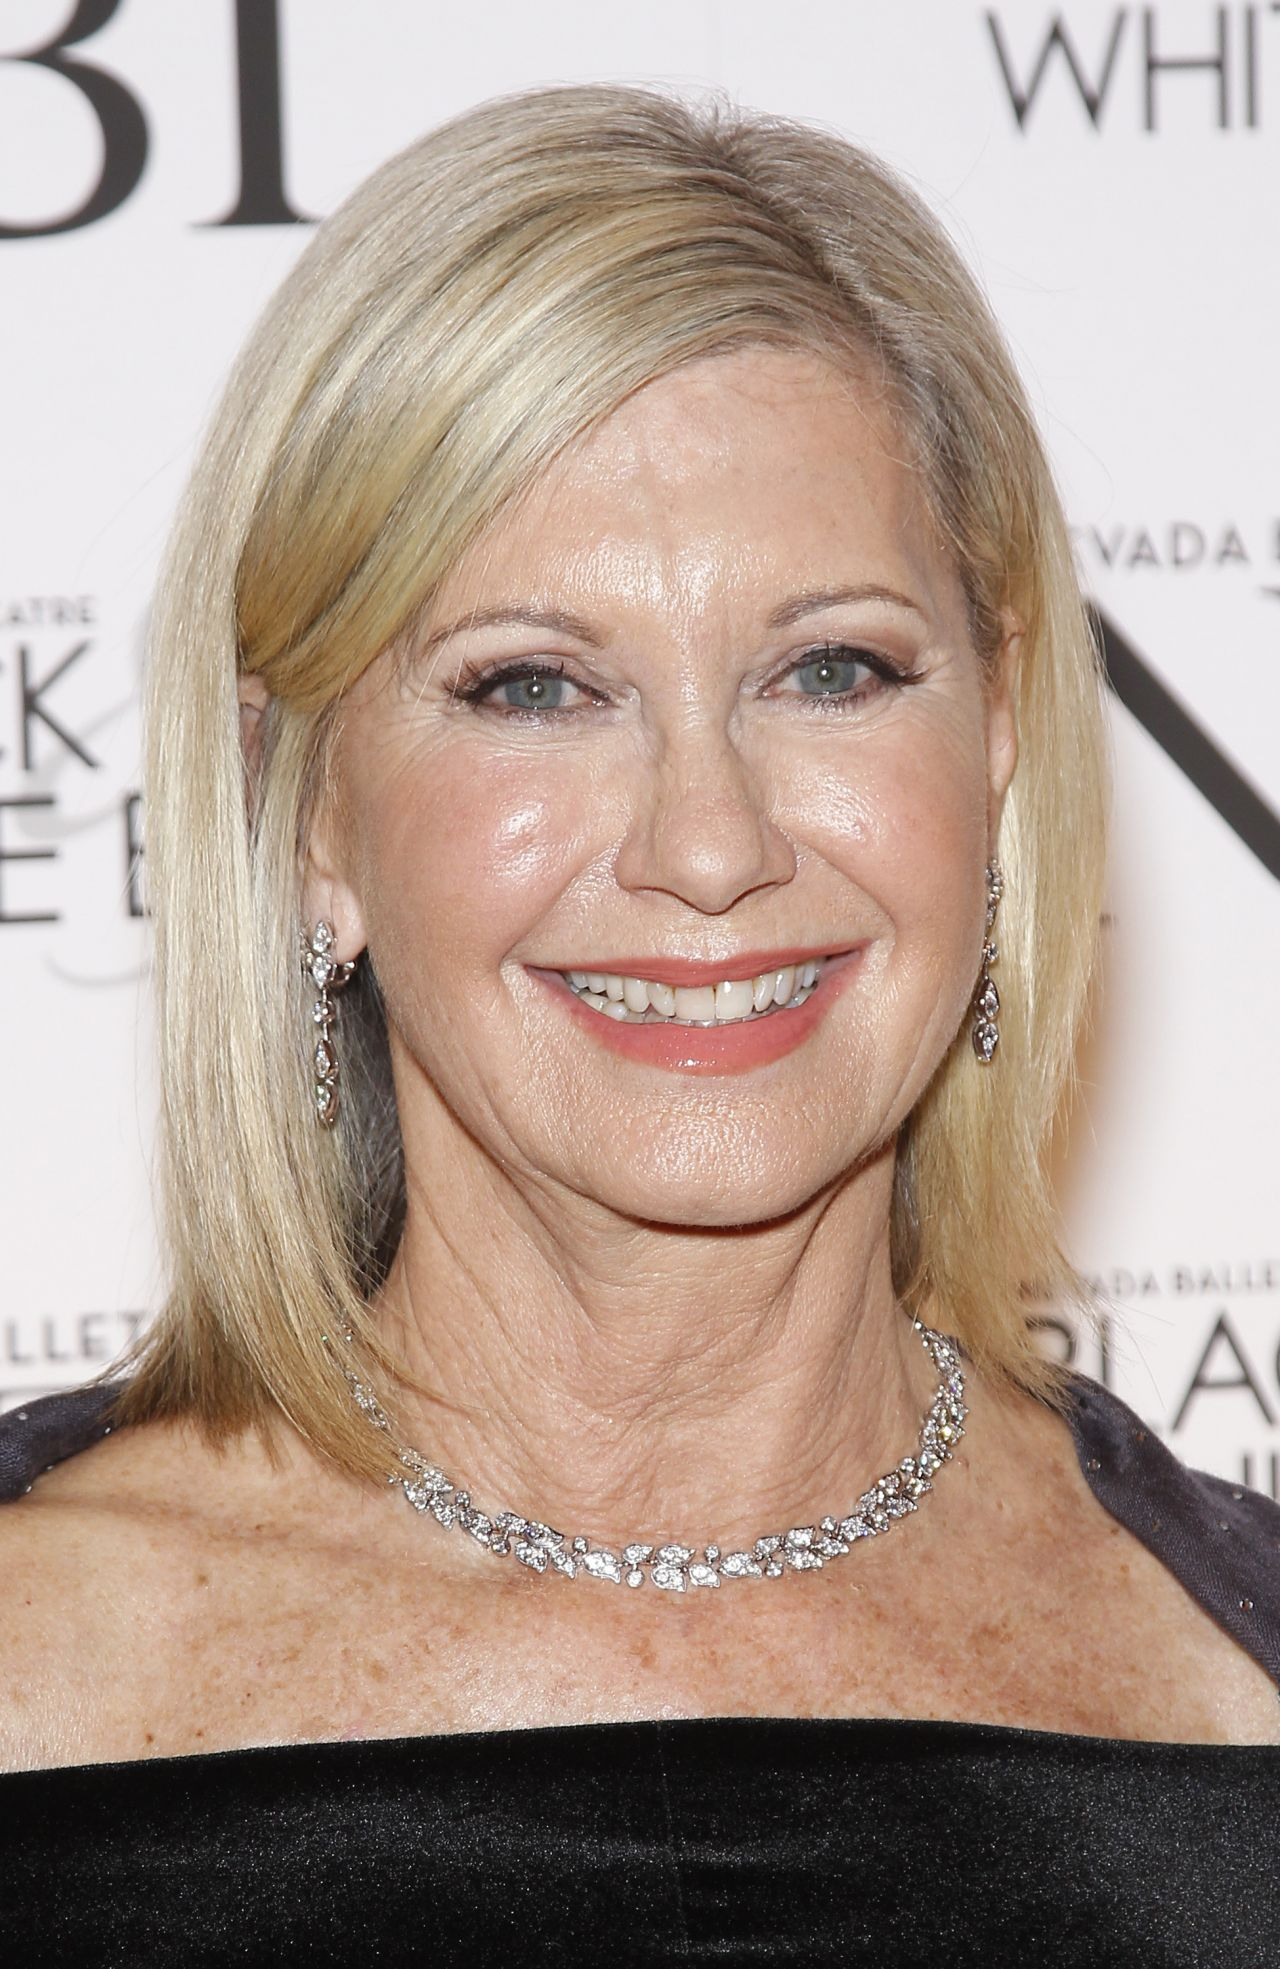 Discussion on this topic: Benny Yau, olivia-newton-john-born-1948/